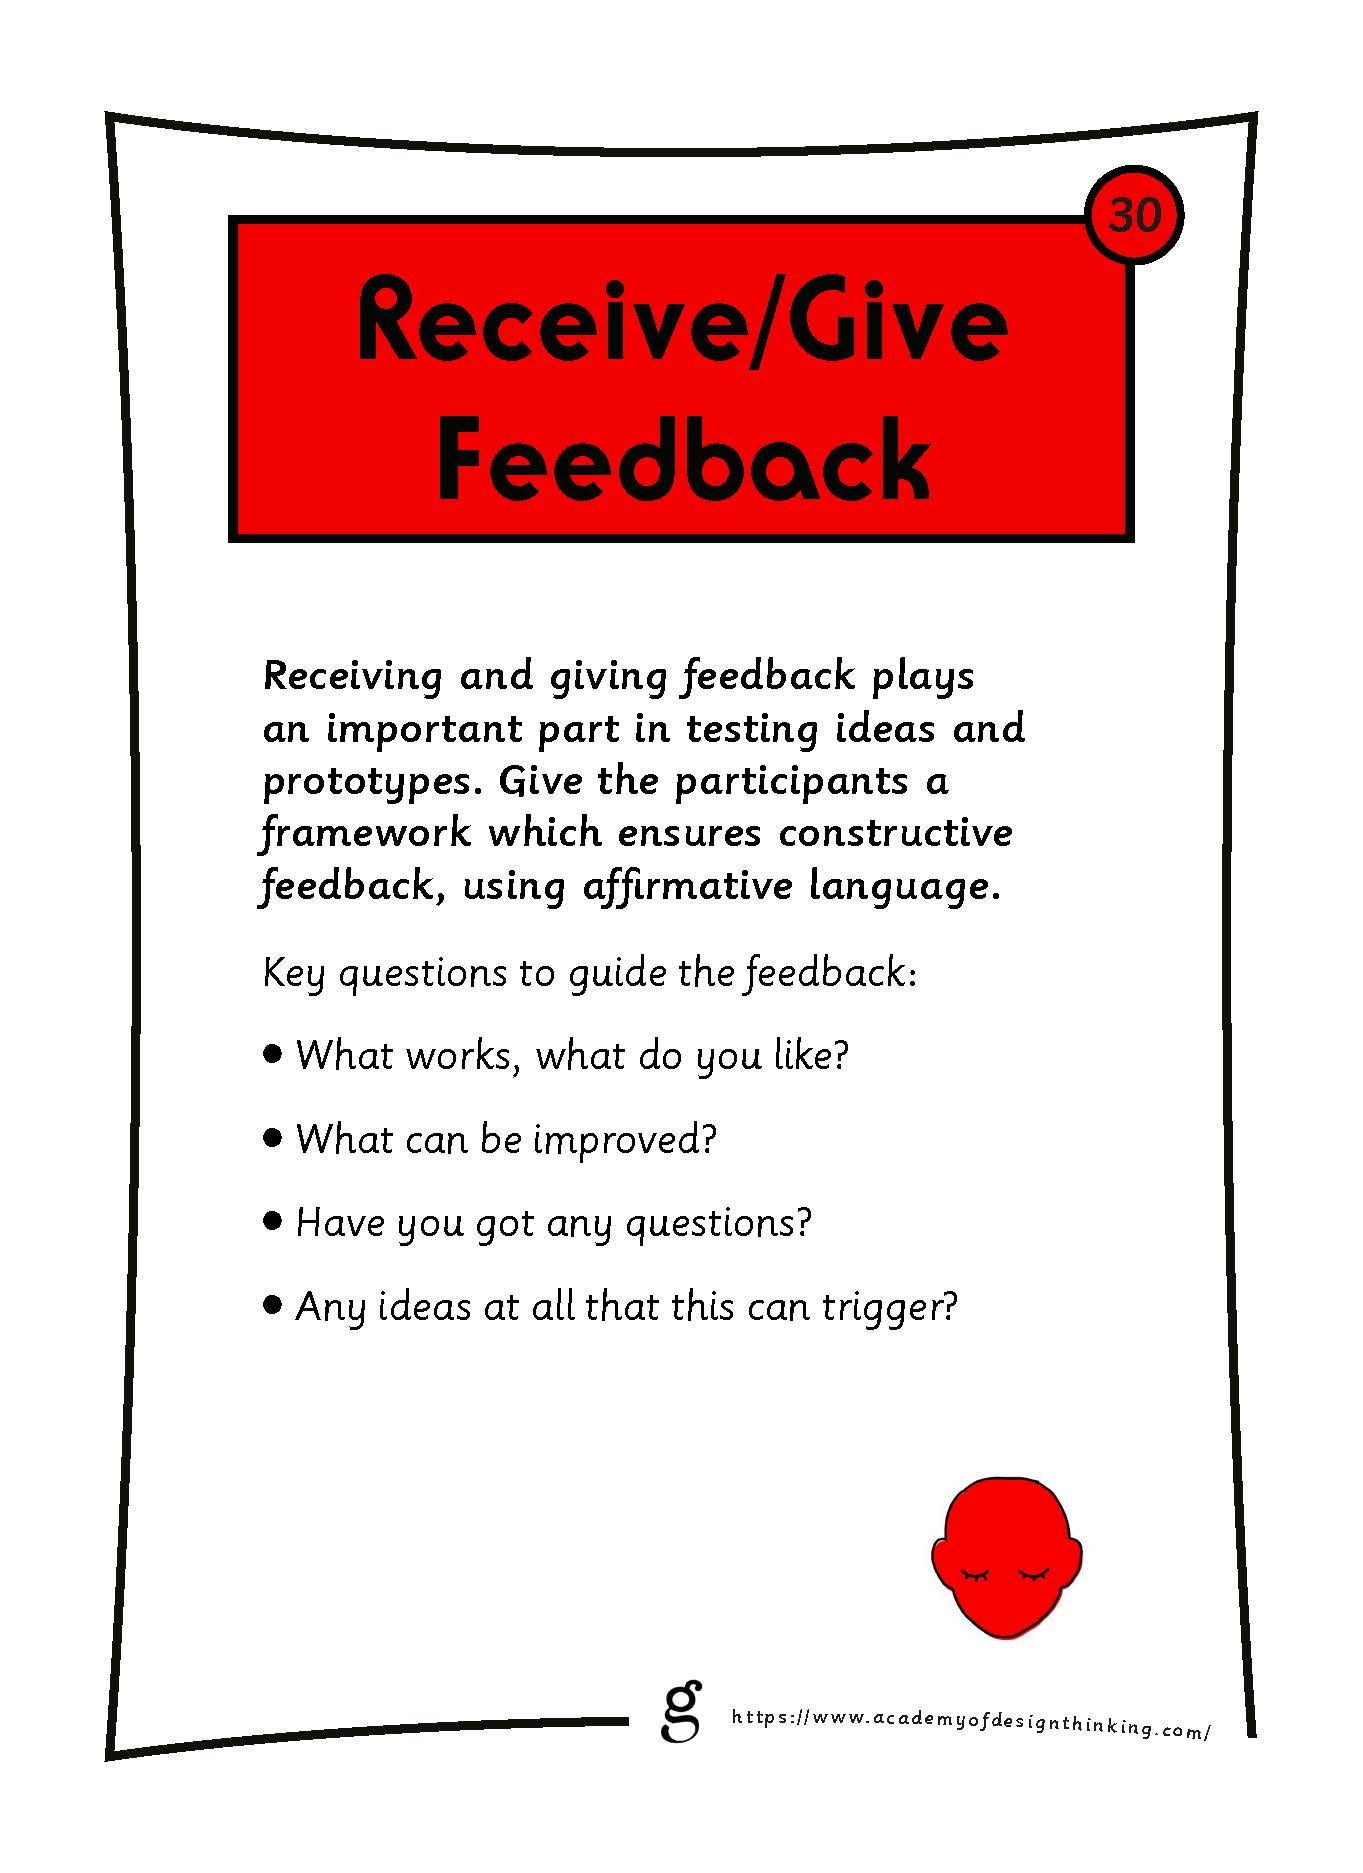 Receive/Give Feedback